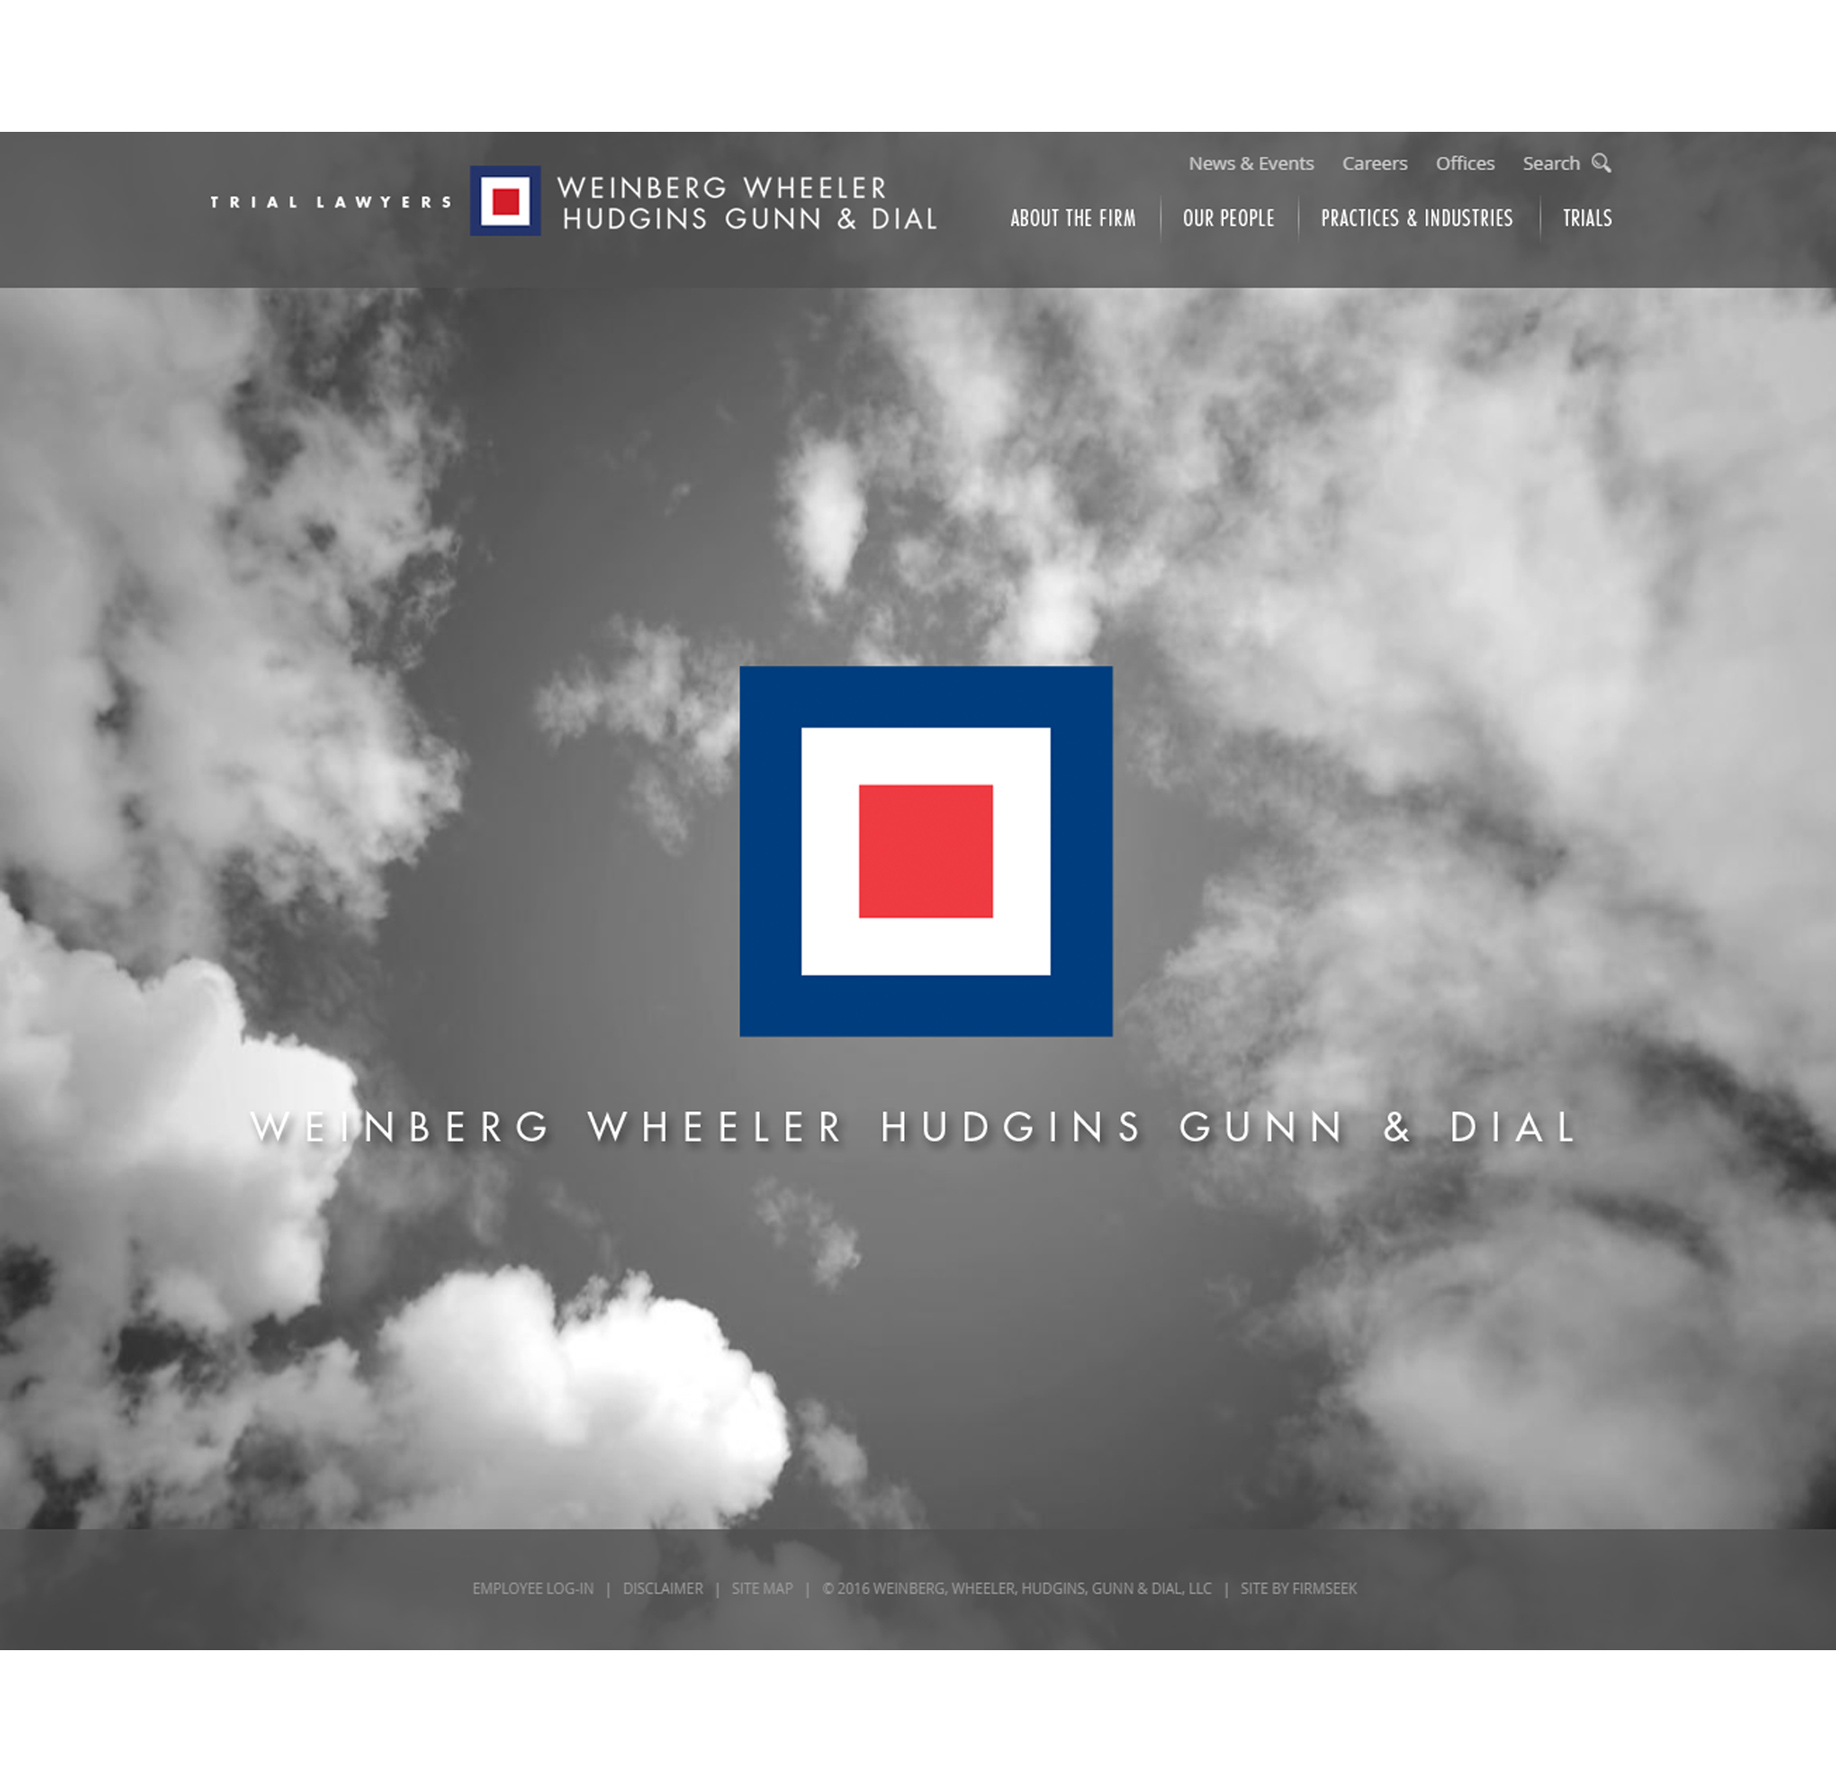 Weinberg Wheeler Website Design and Development Project image